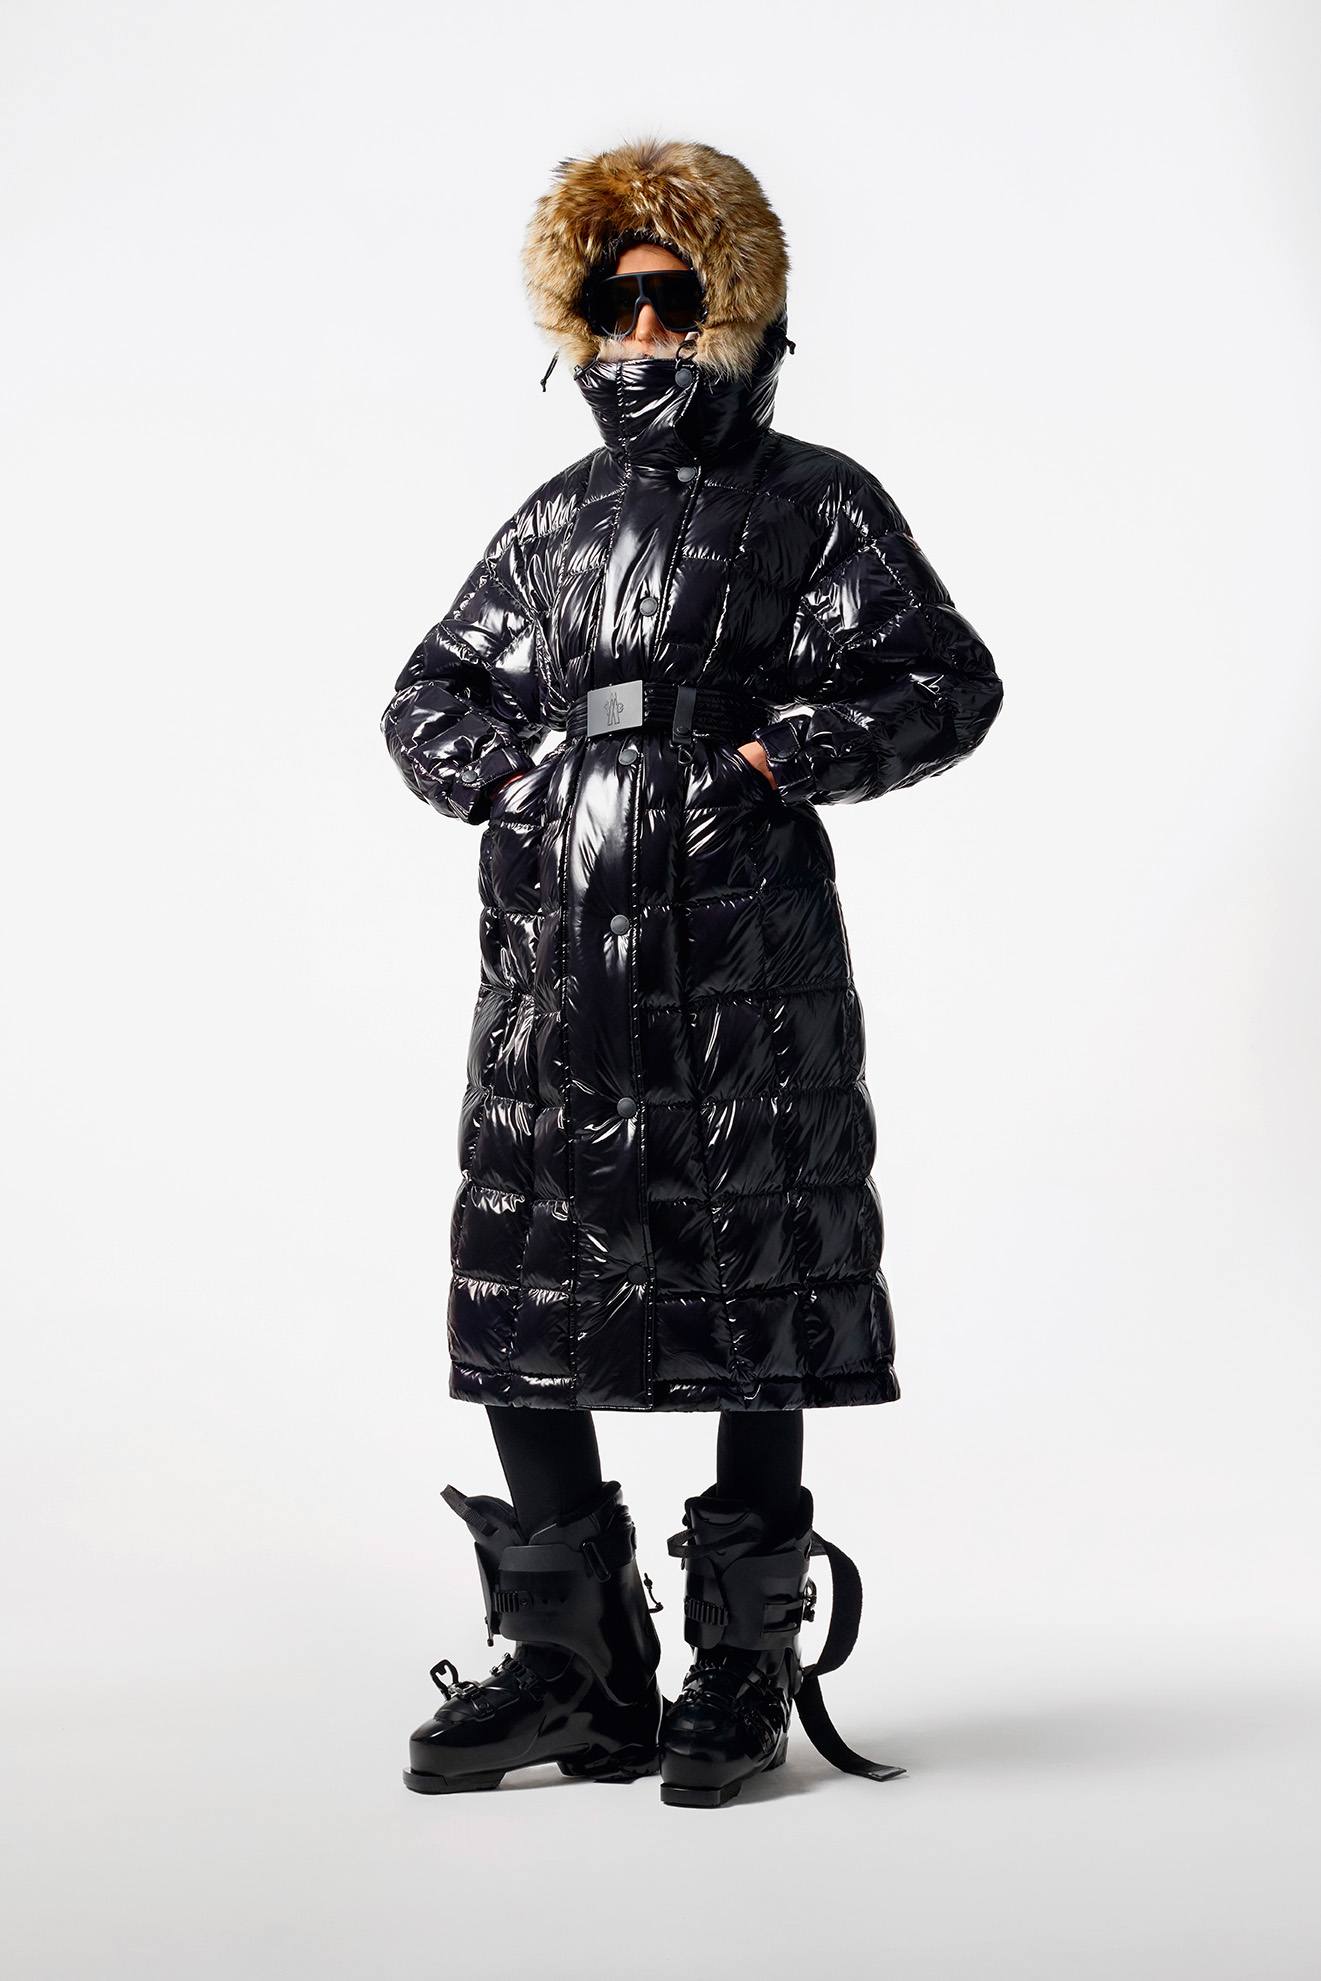 Moncler Grenoble Goes High Fashion For Winter 2020